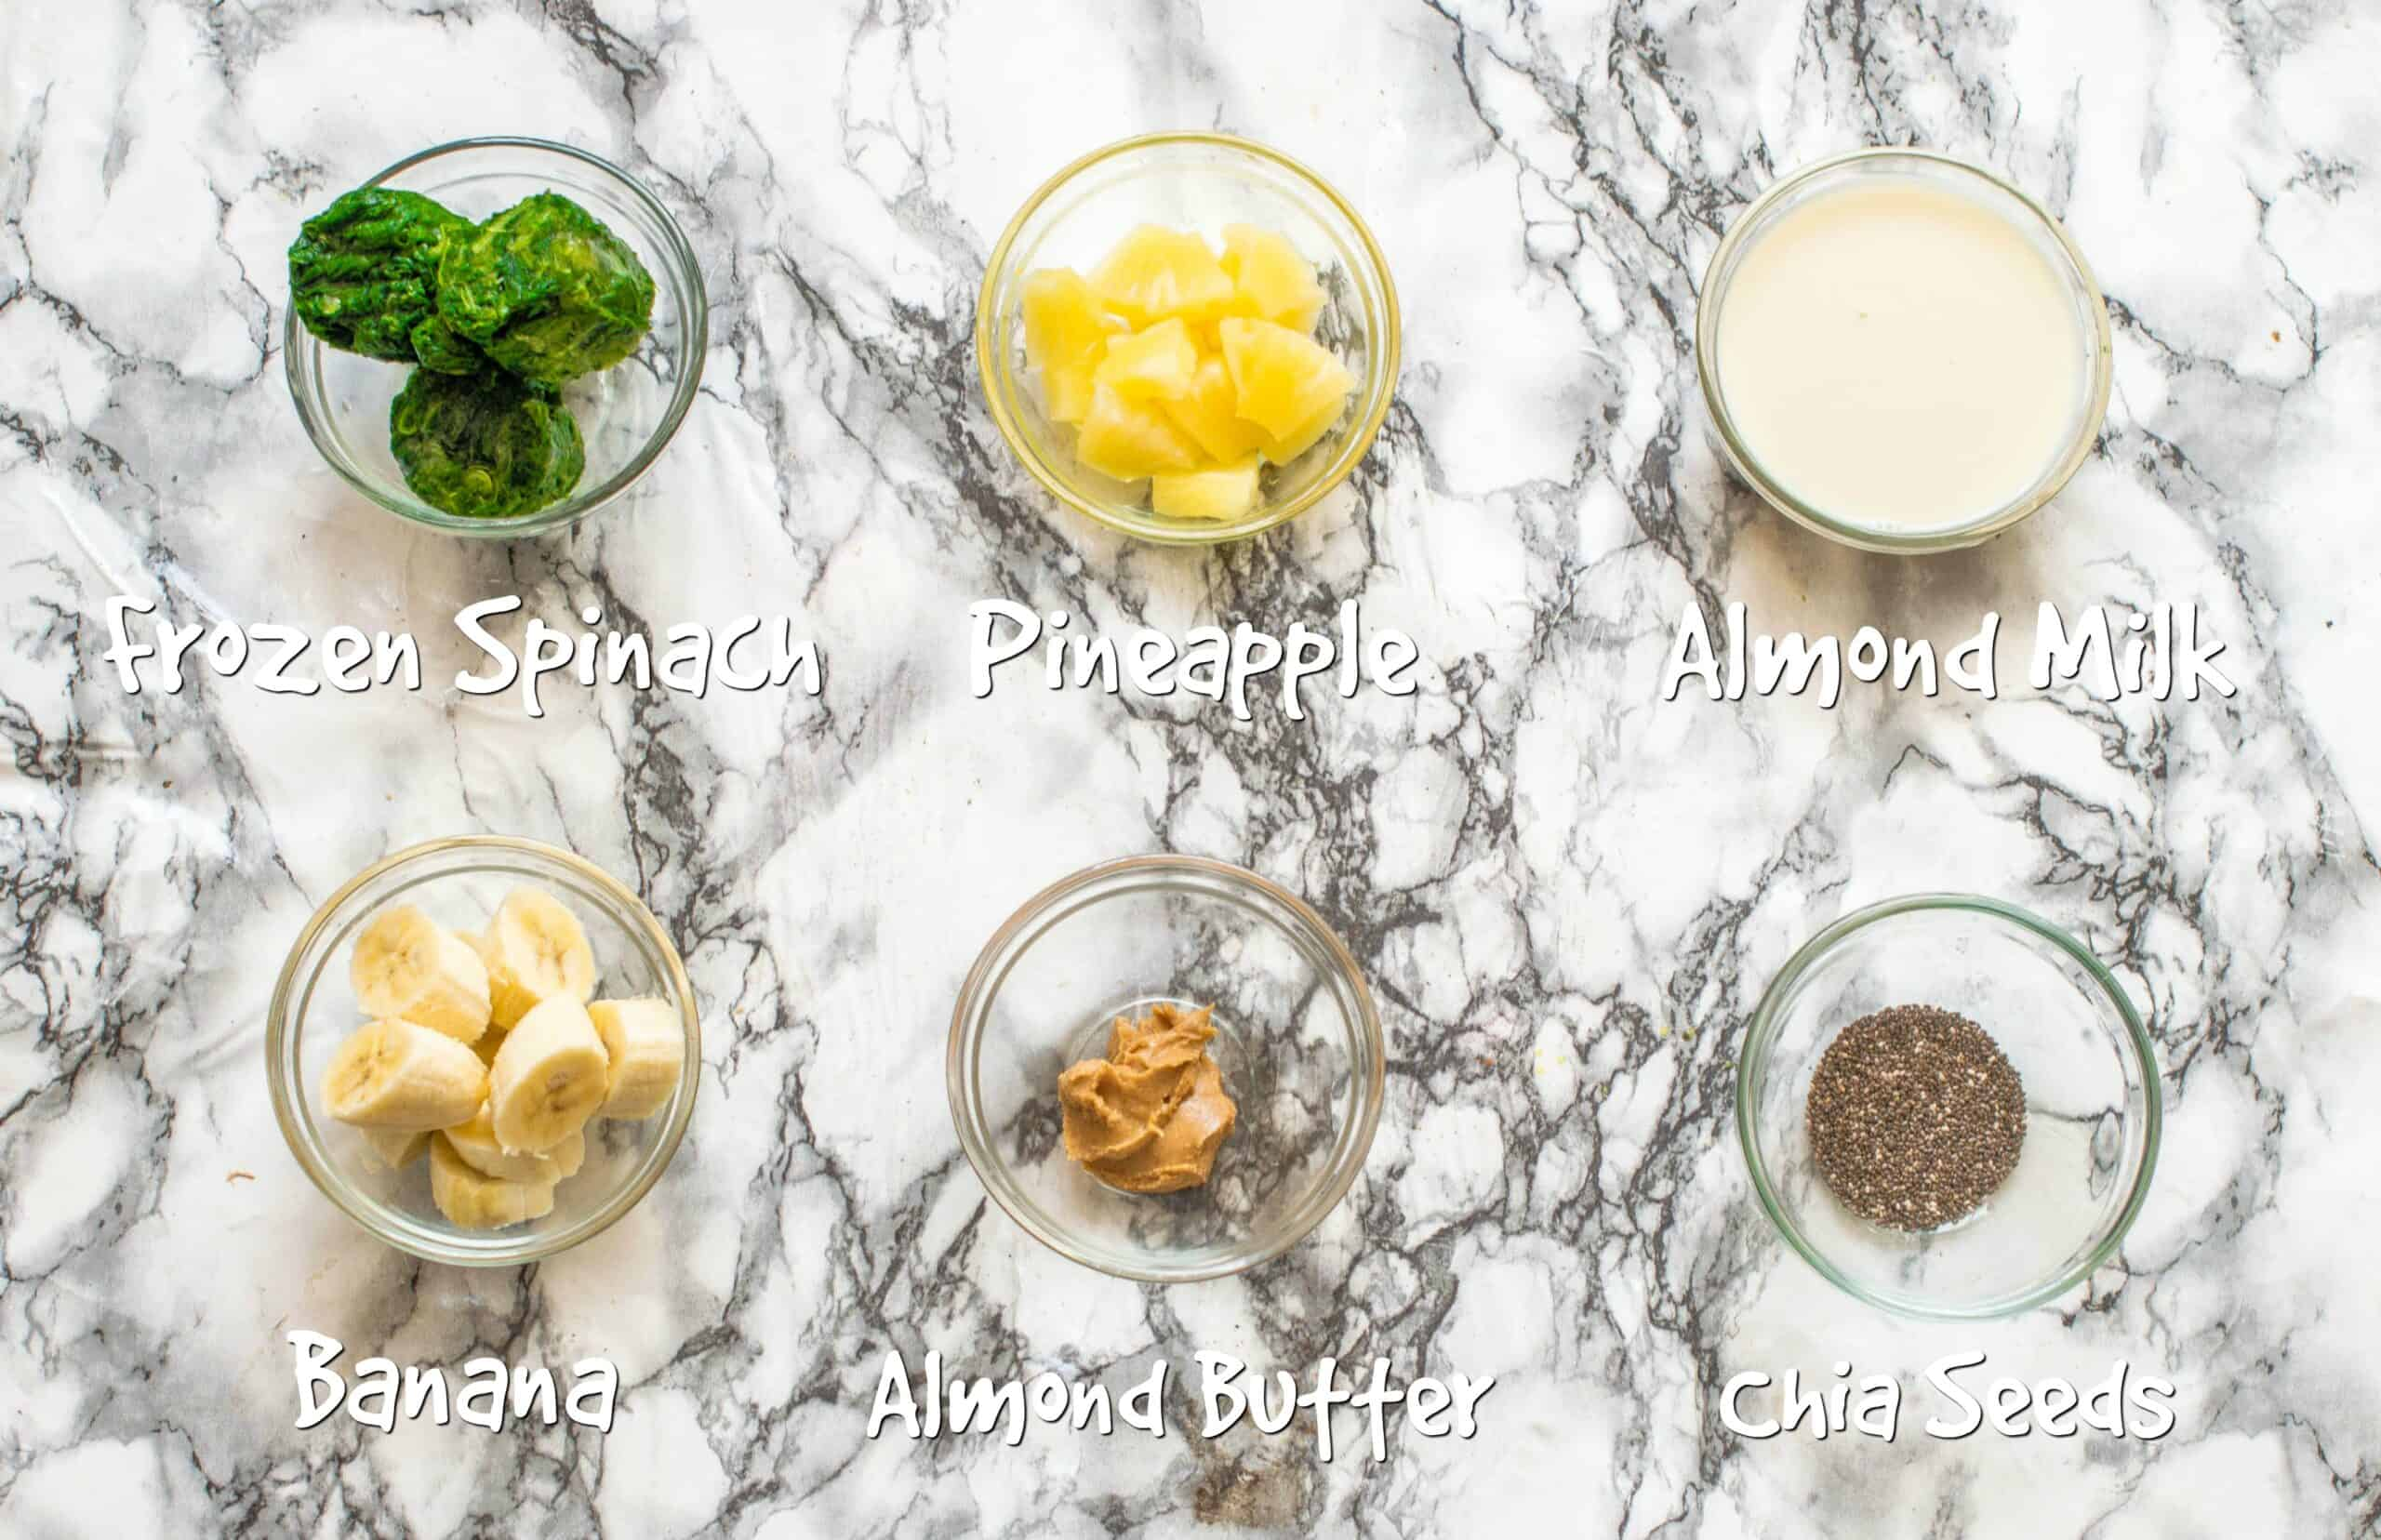 ingredients for pineapple spinach smoothie